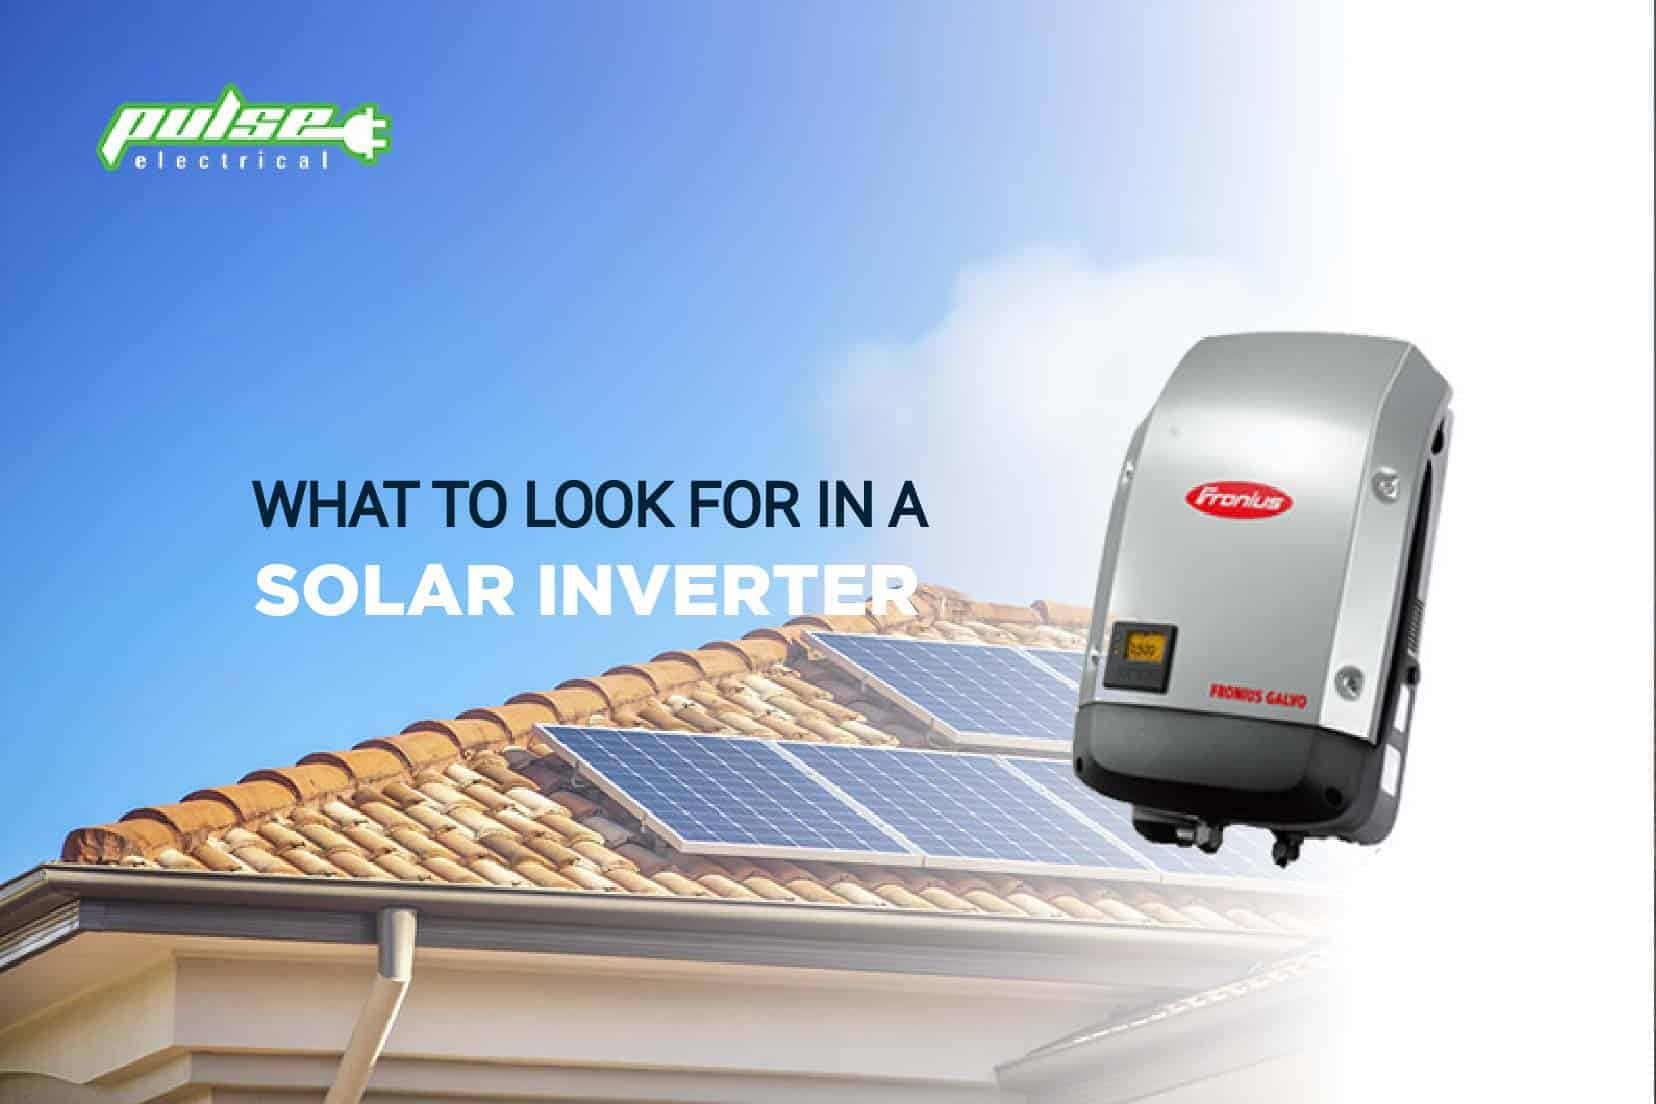 PULSE ELECTRICAL SOLAR INVERTER